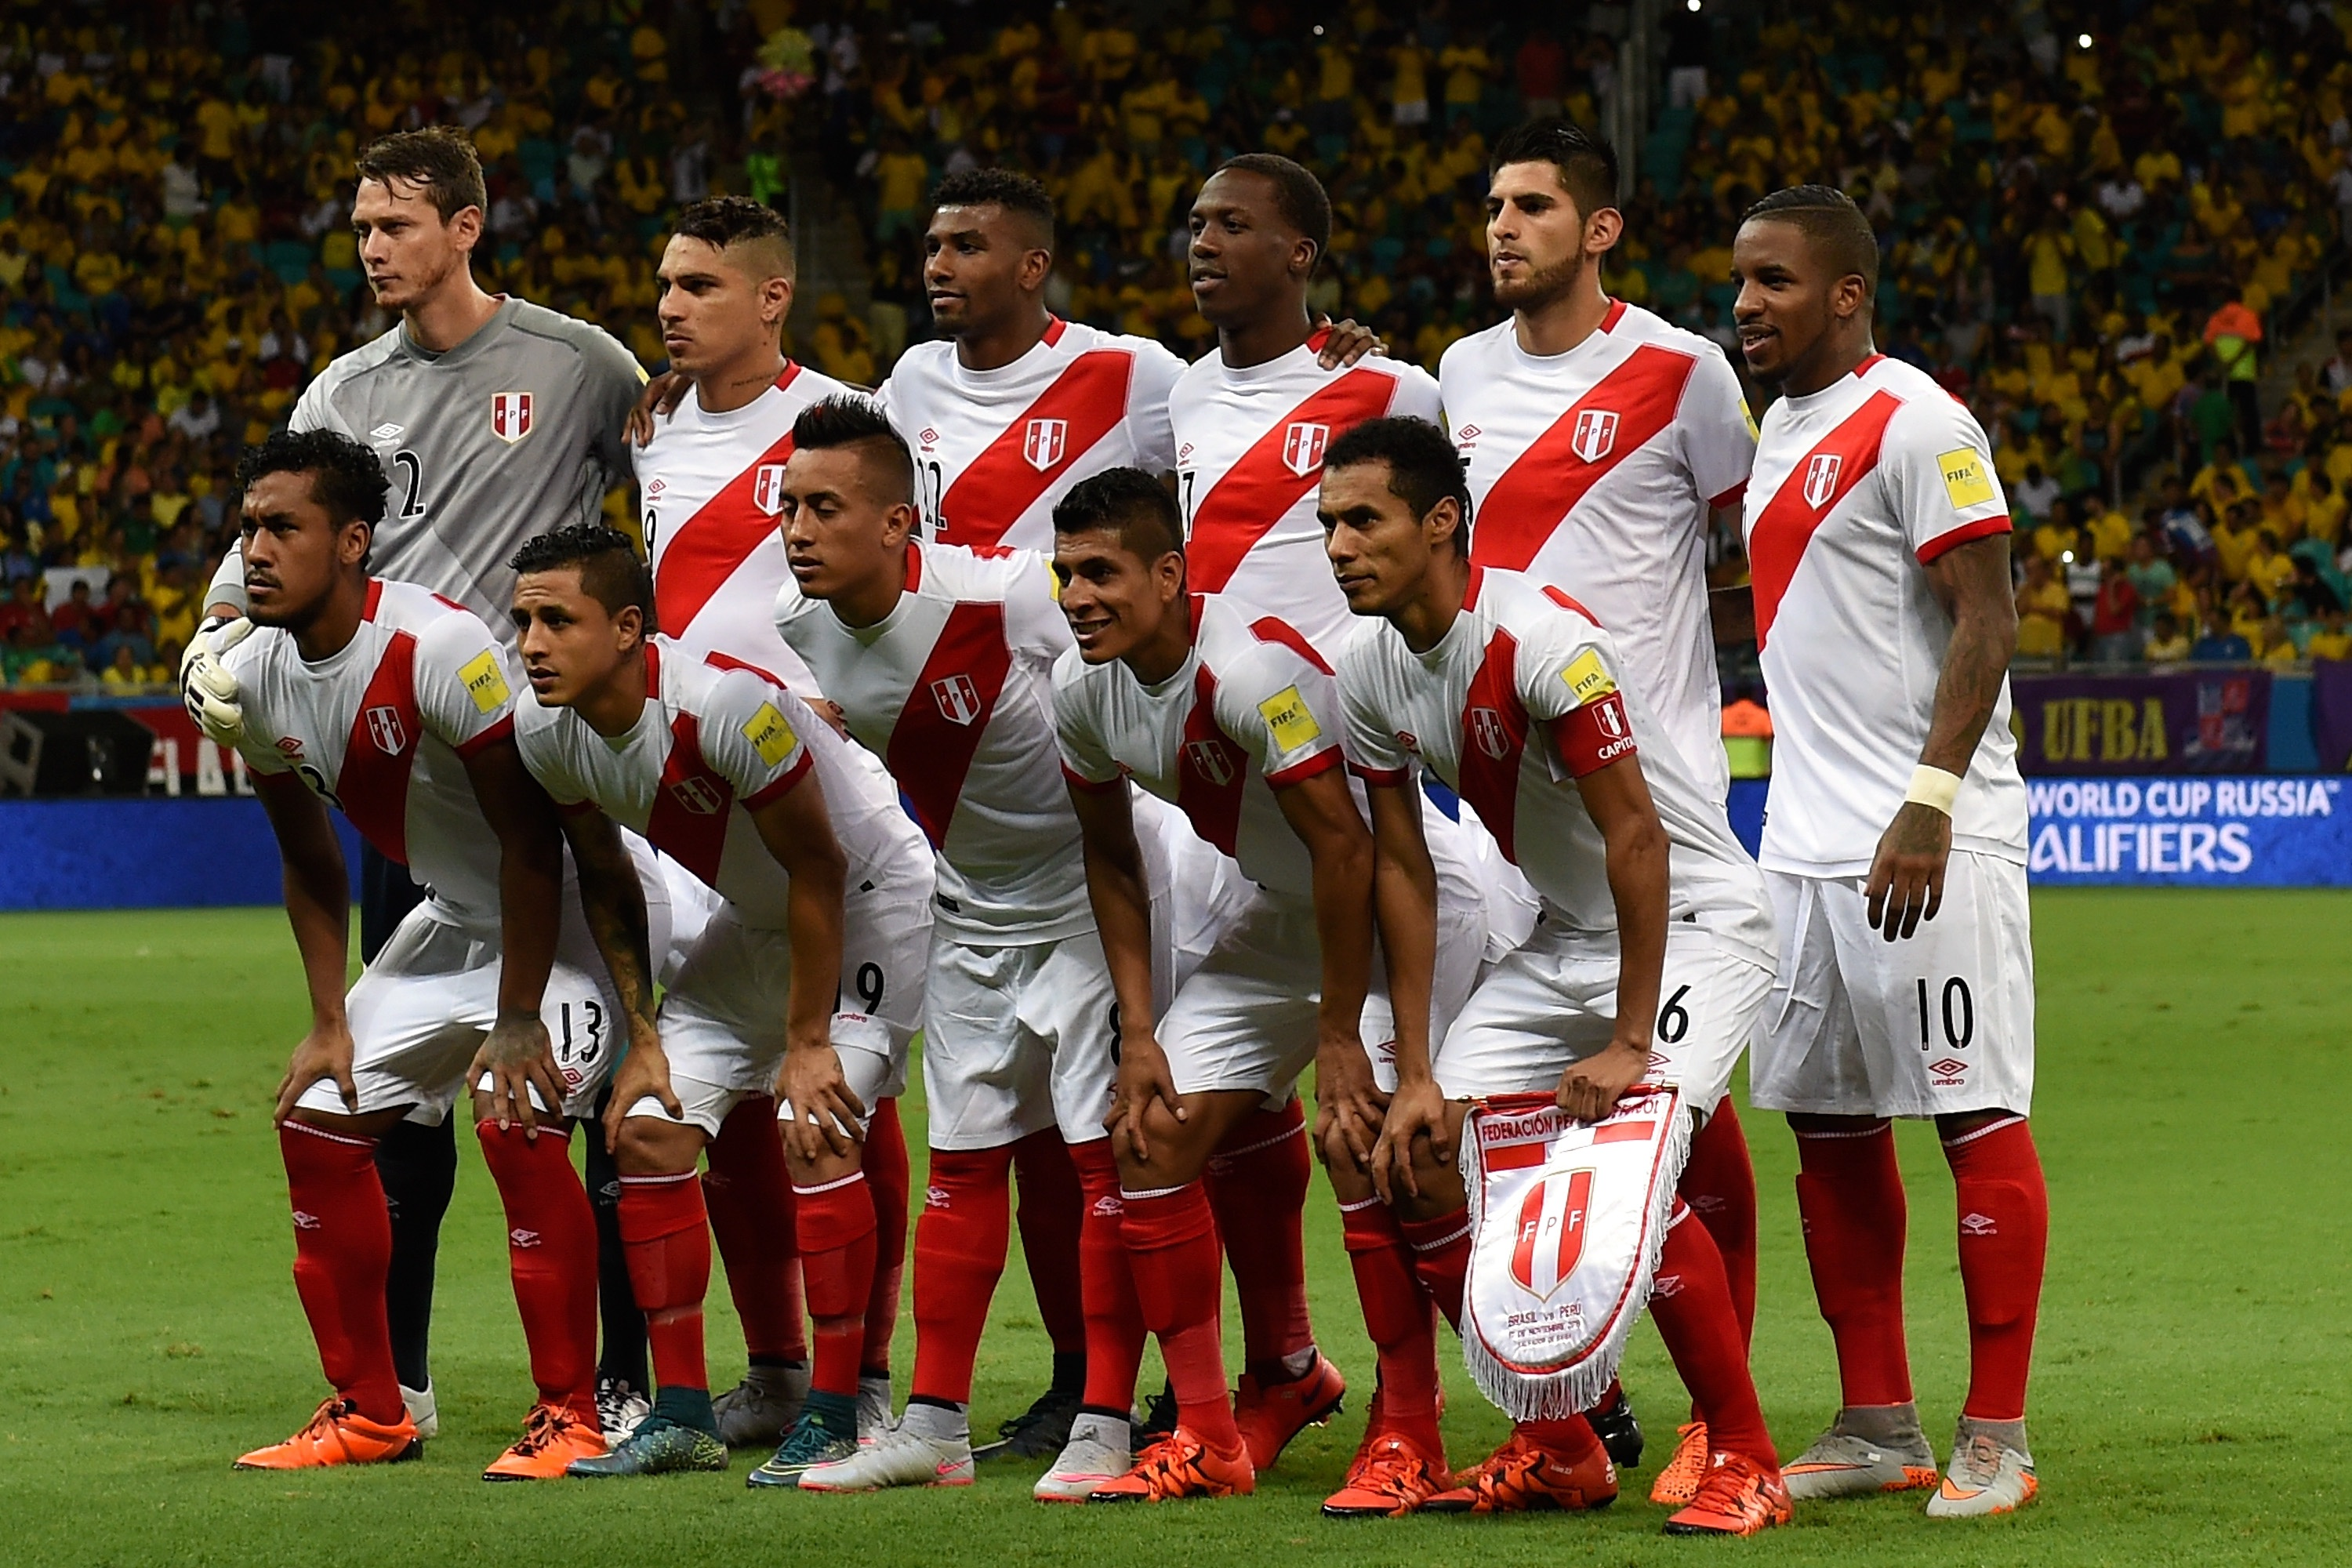 Peru s players pose for a photo before a match between Brazil and Peru as  part of 2018 FIFA World Cup Russia Qualifiers. Photo by Buda Mendes Getty  Images 493ee65f9